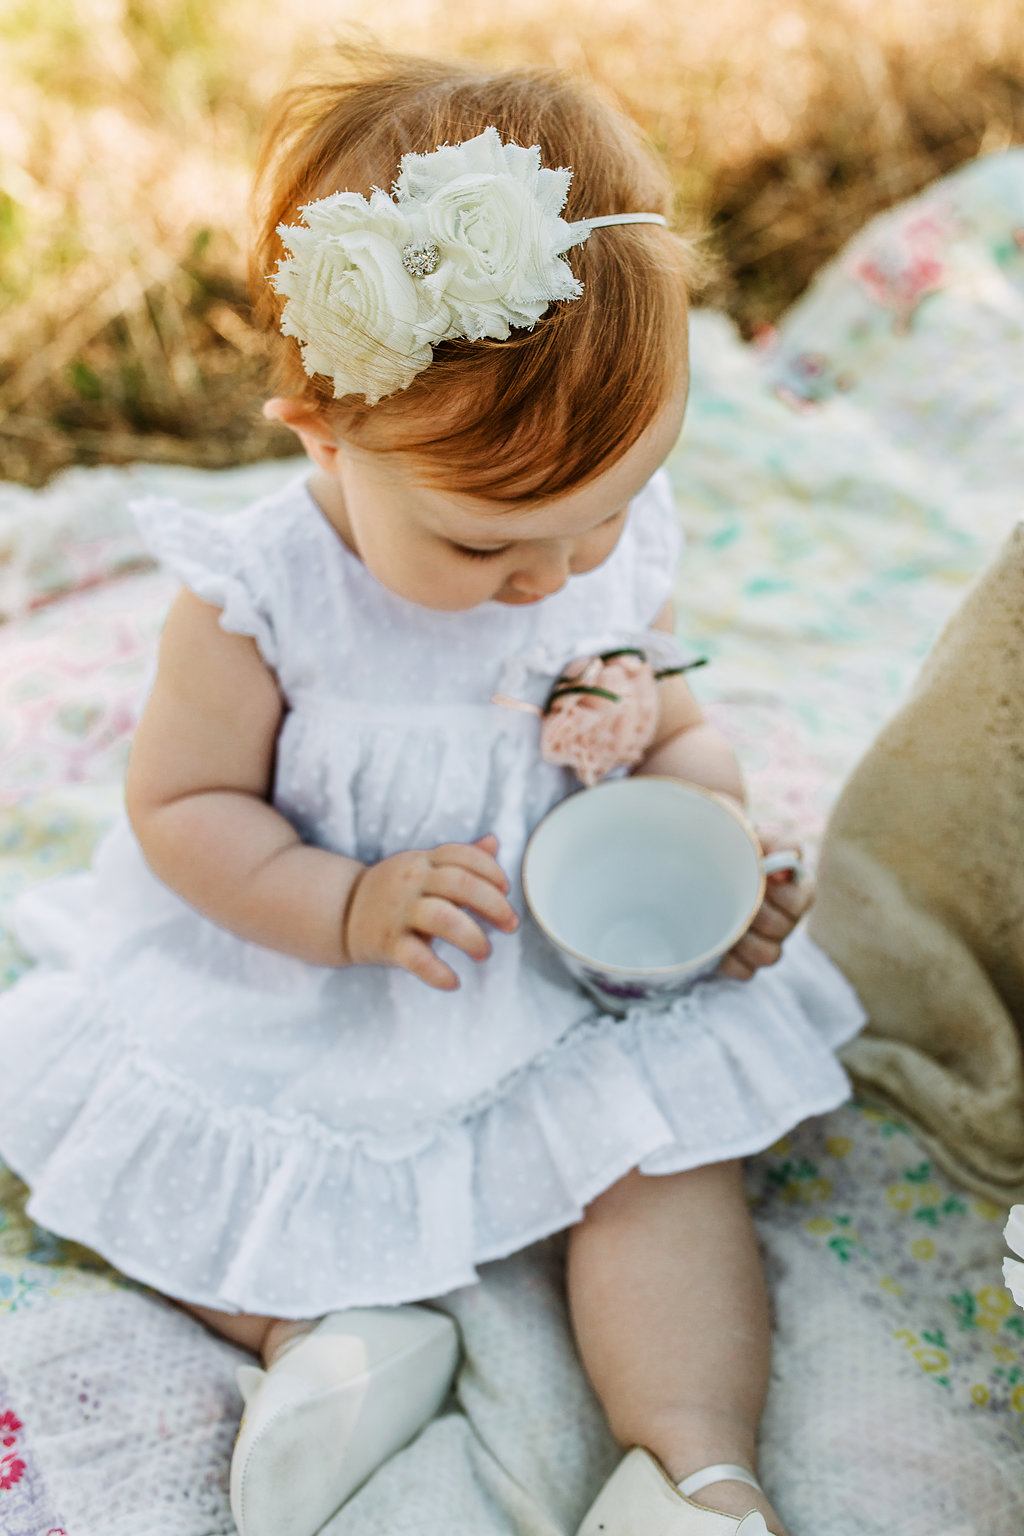 Baby-Holding-Teacup-First-Year